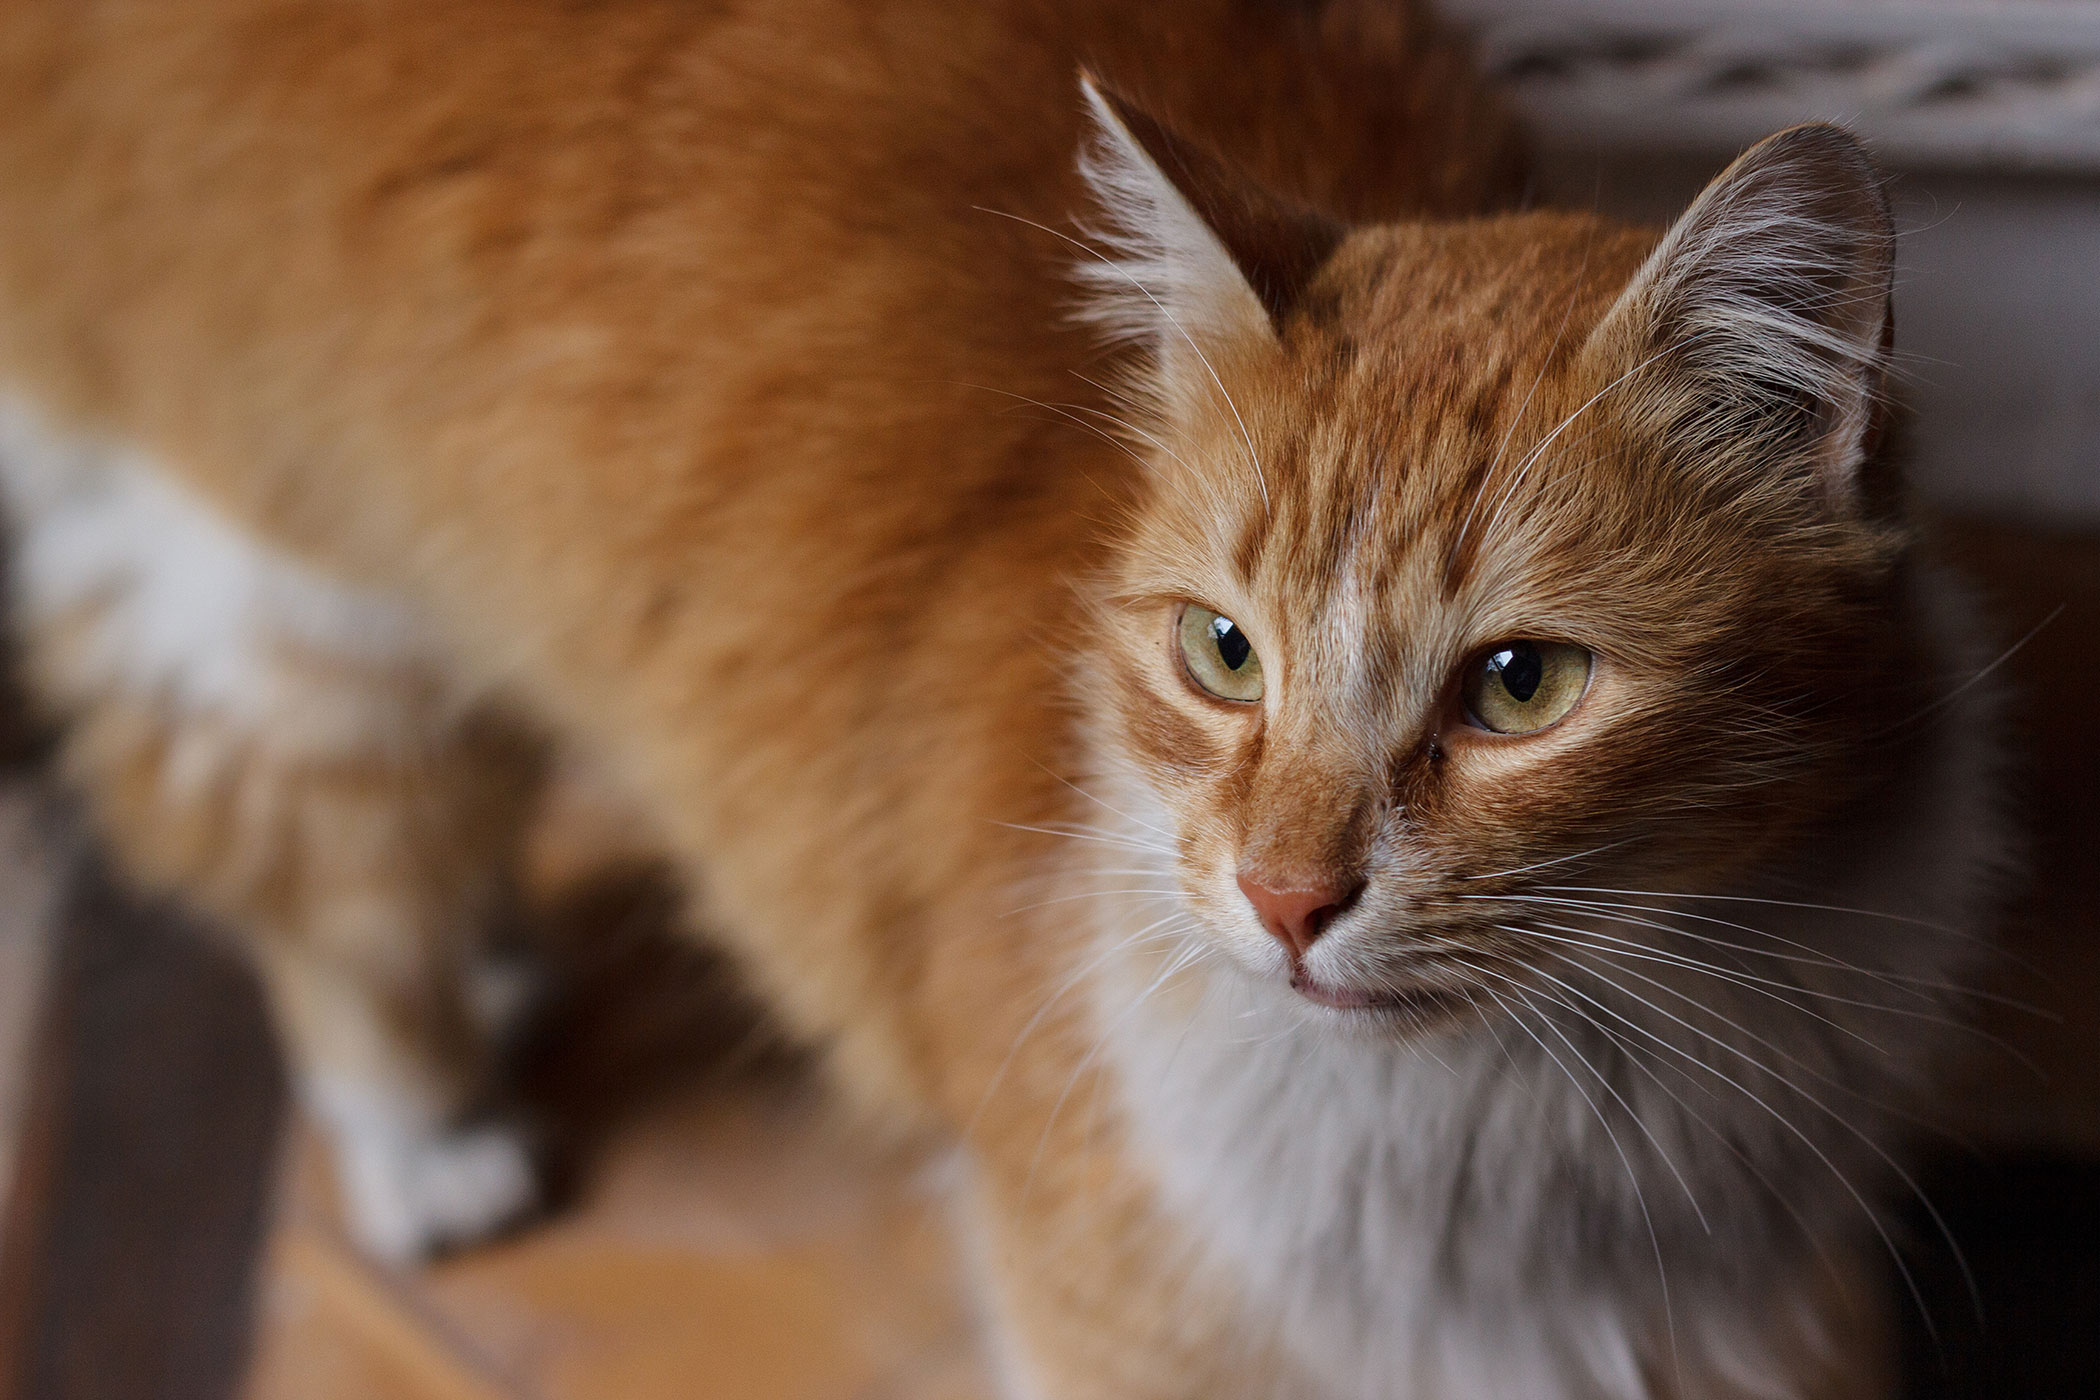 Mycoplasma Infection in Cats